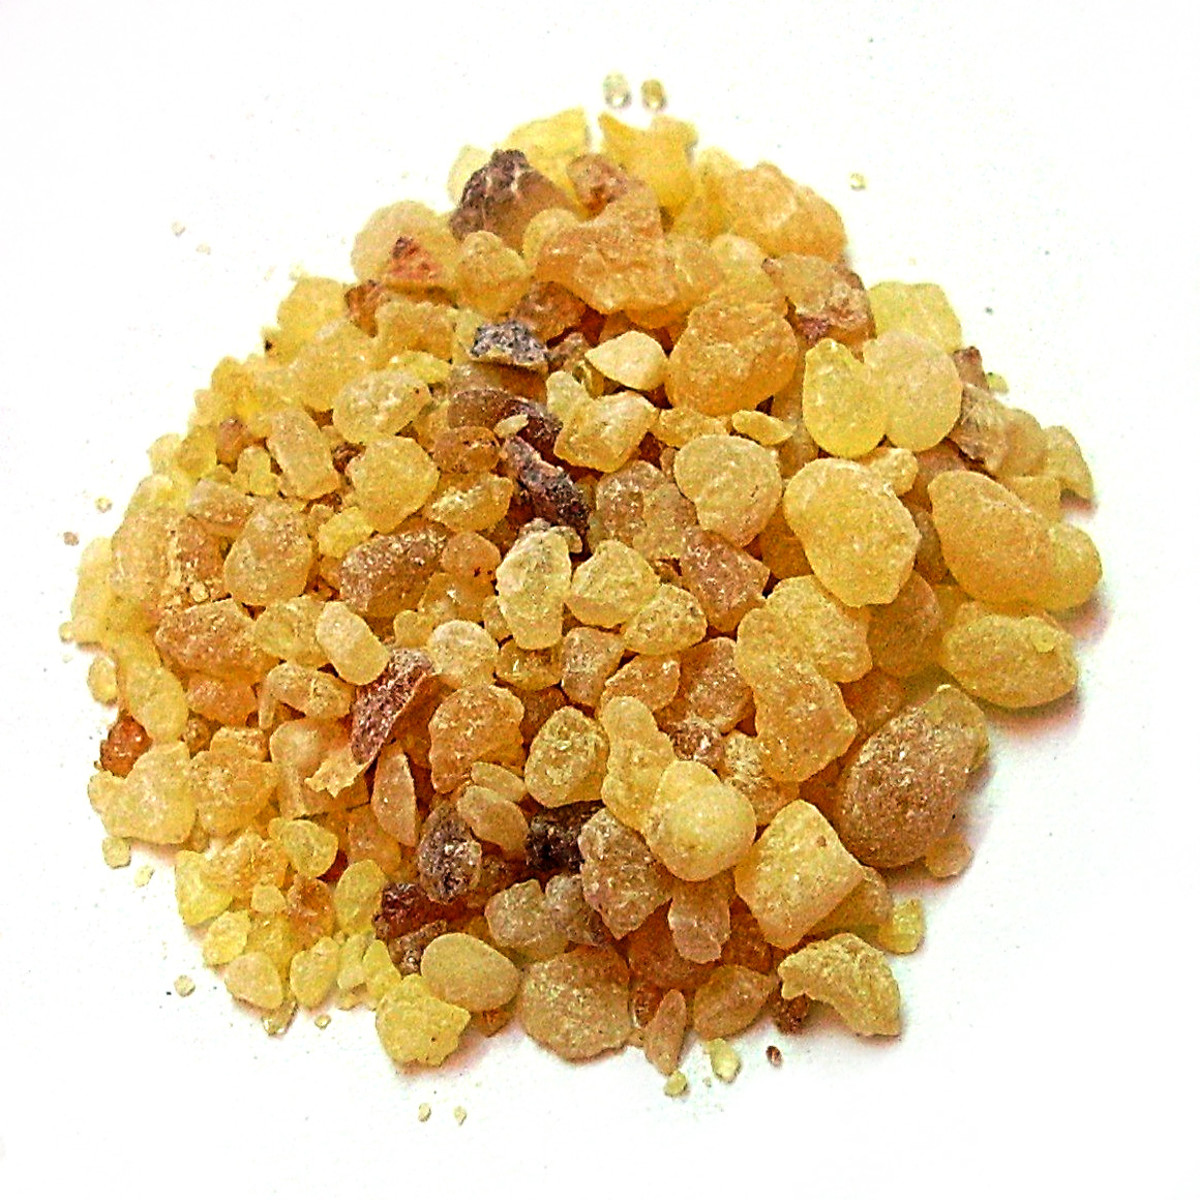 Frankincense - A common ingredient in loose incense.